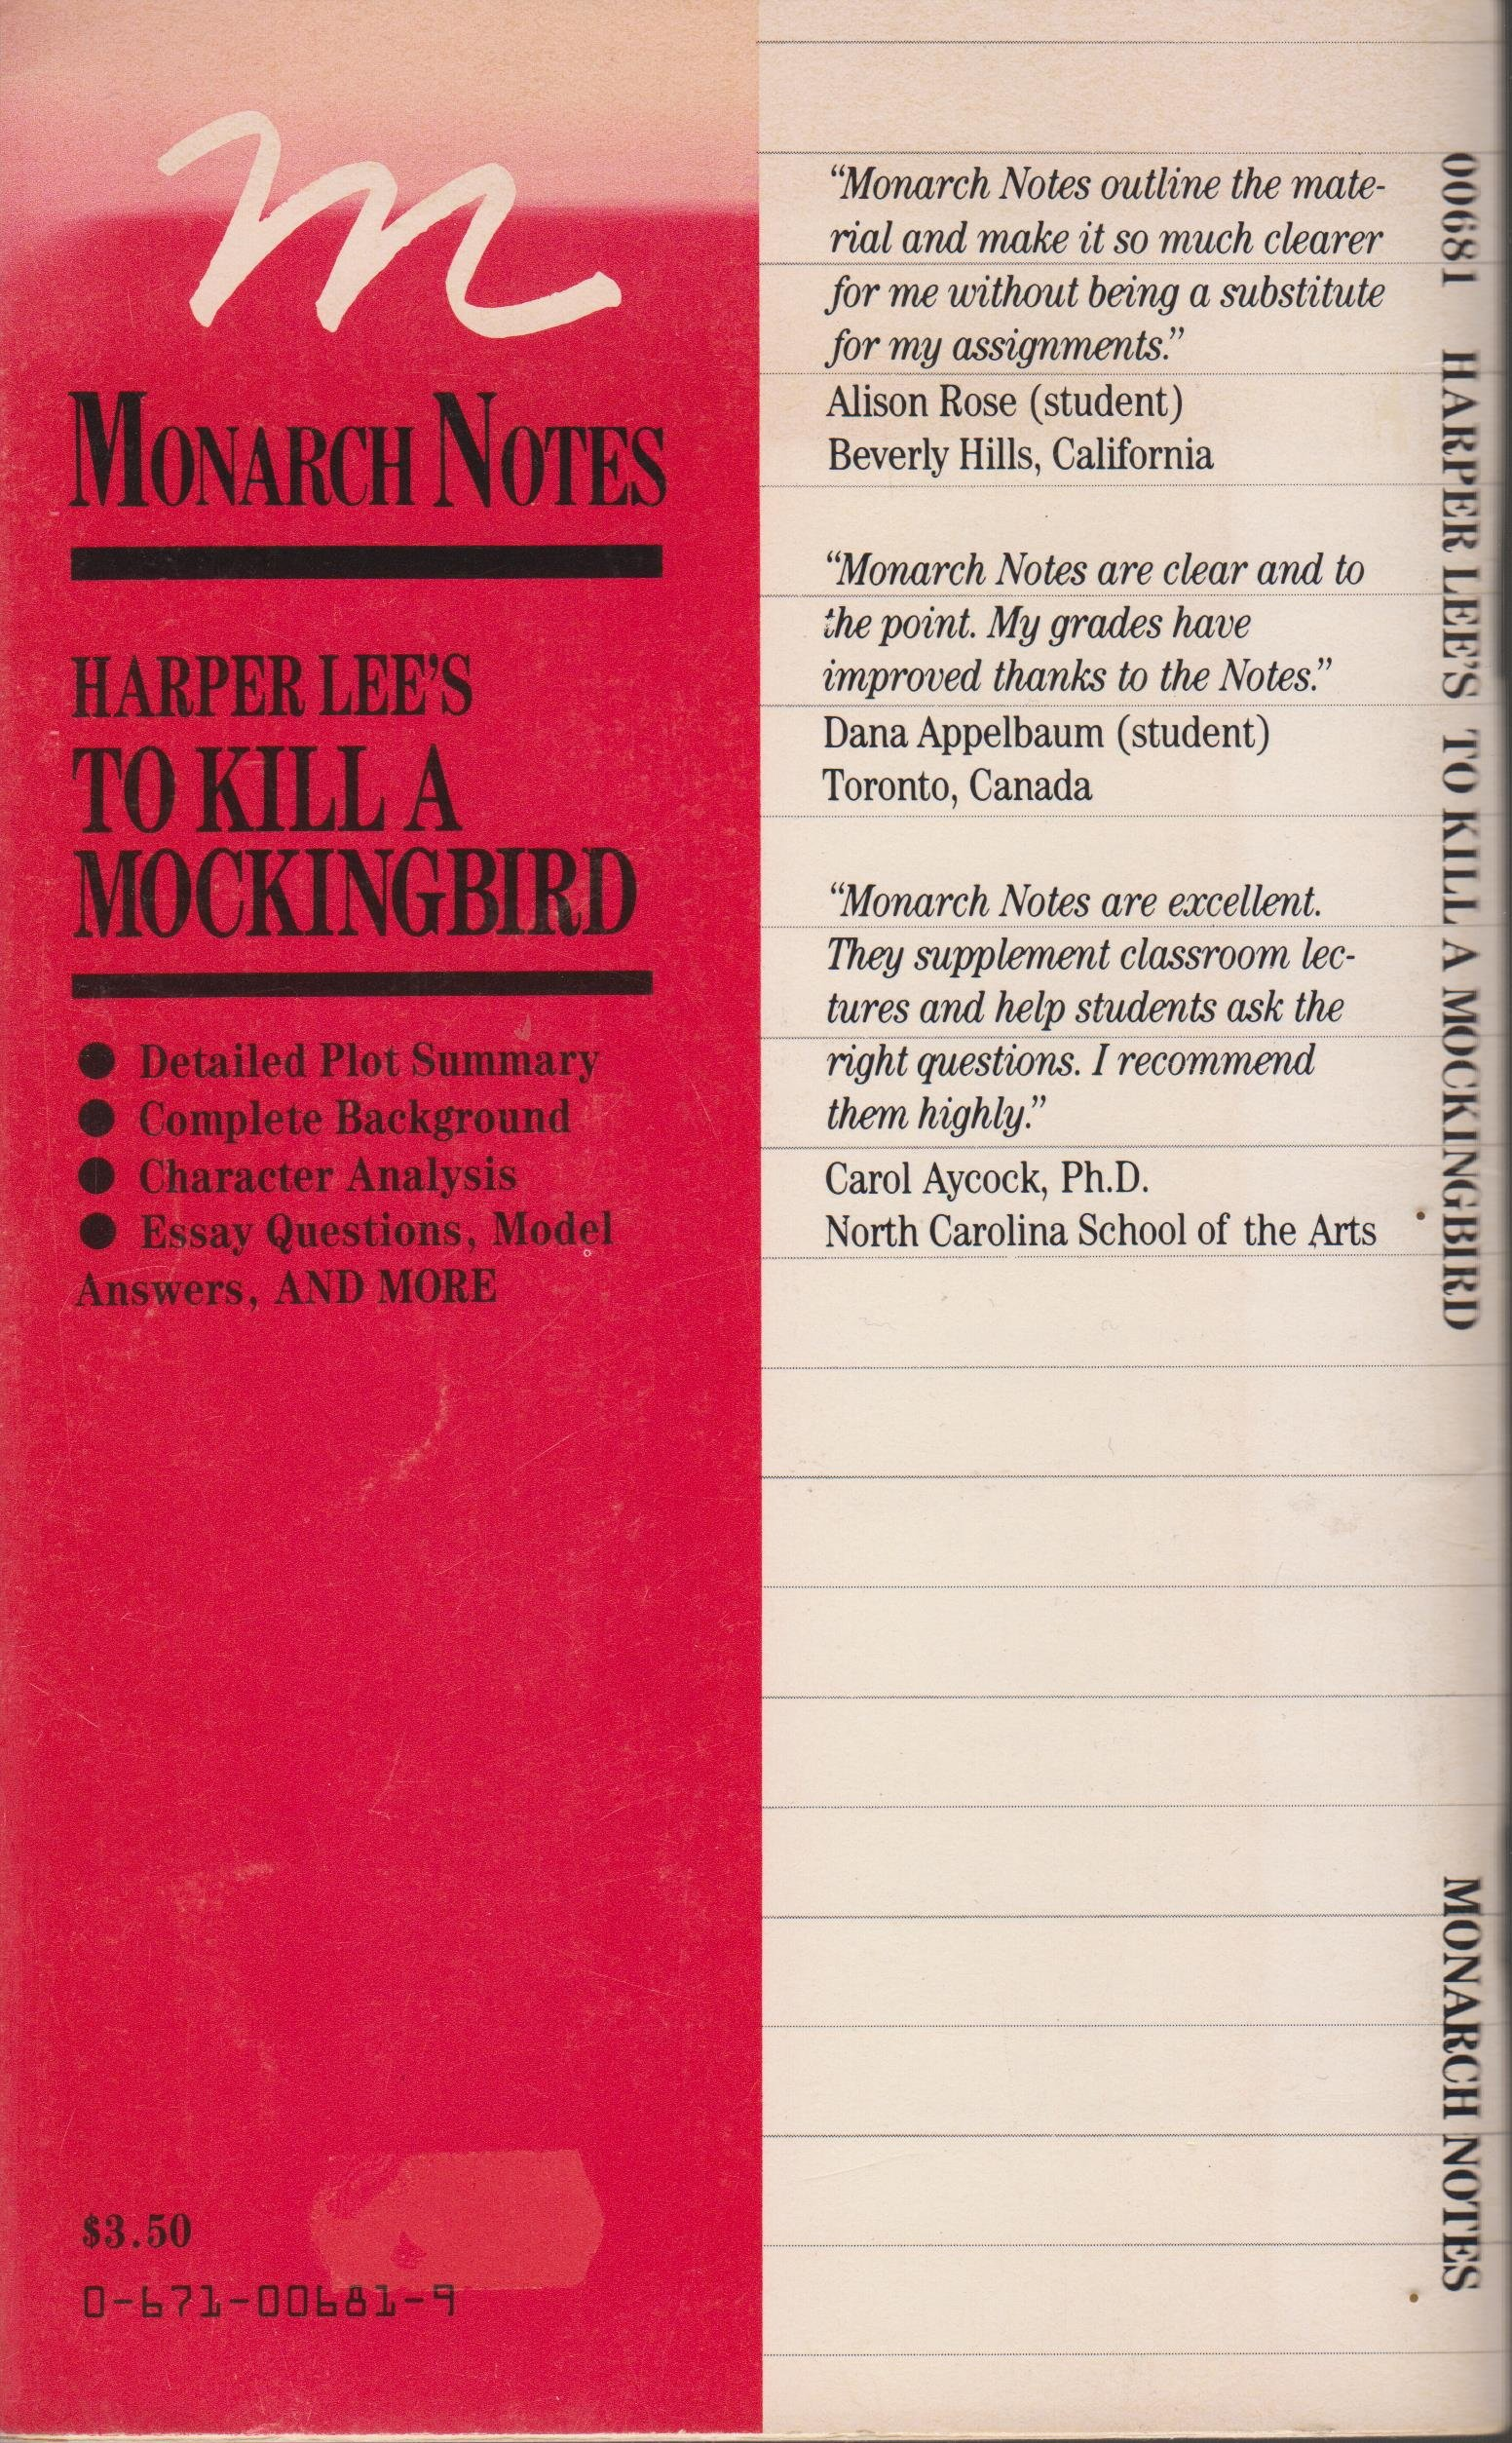 com harper lee s to kill a mocking bird monarch notes com harper lee s to kill a mocking bird monarch notes 9780671006815 donald f roden books